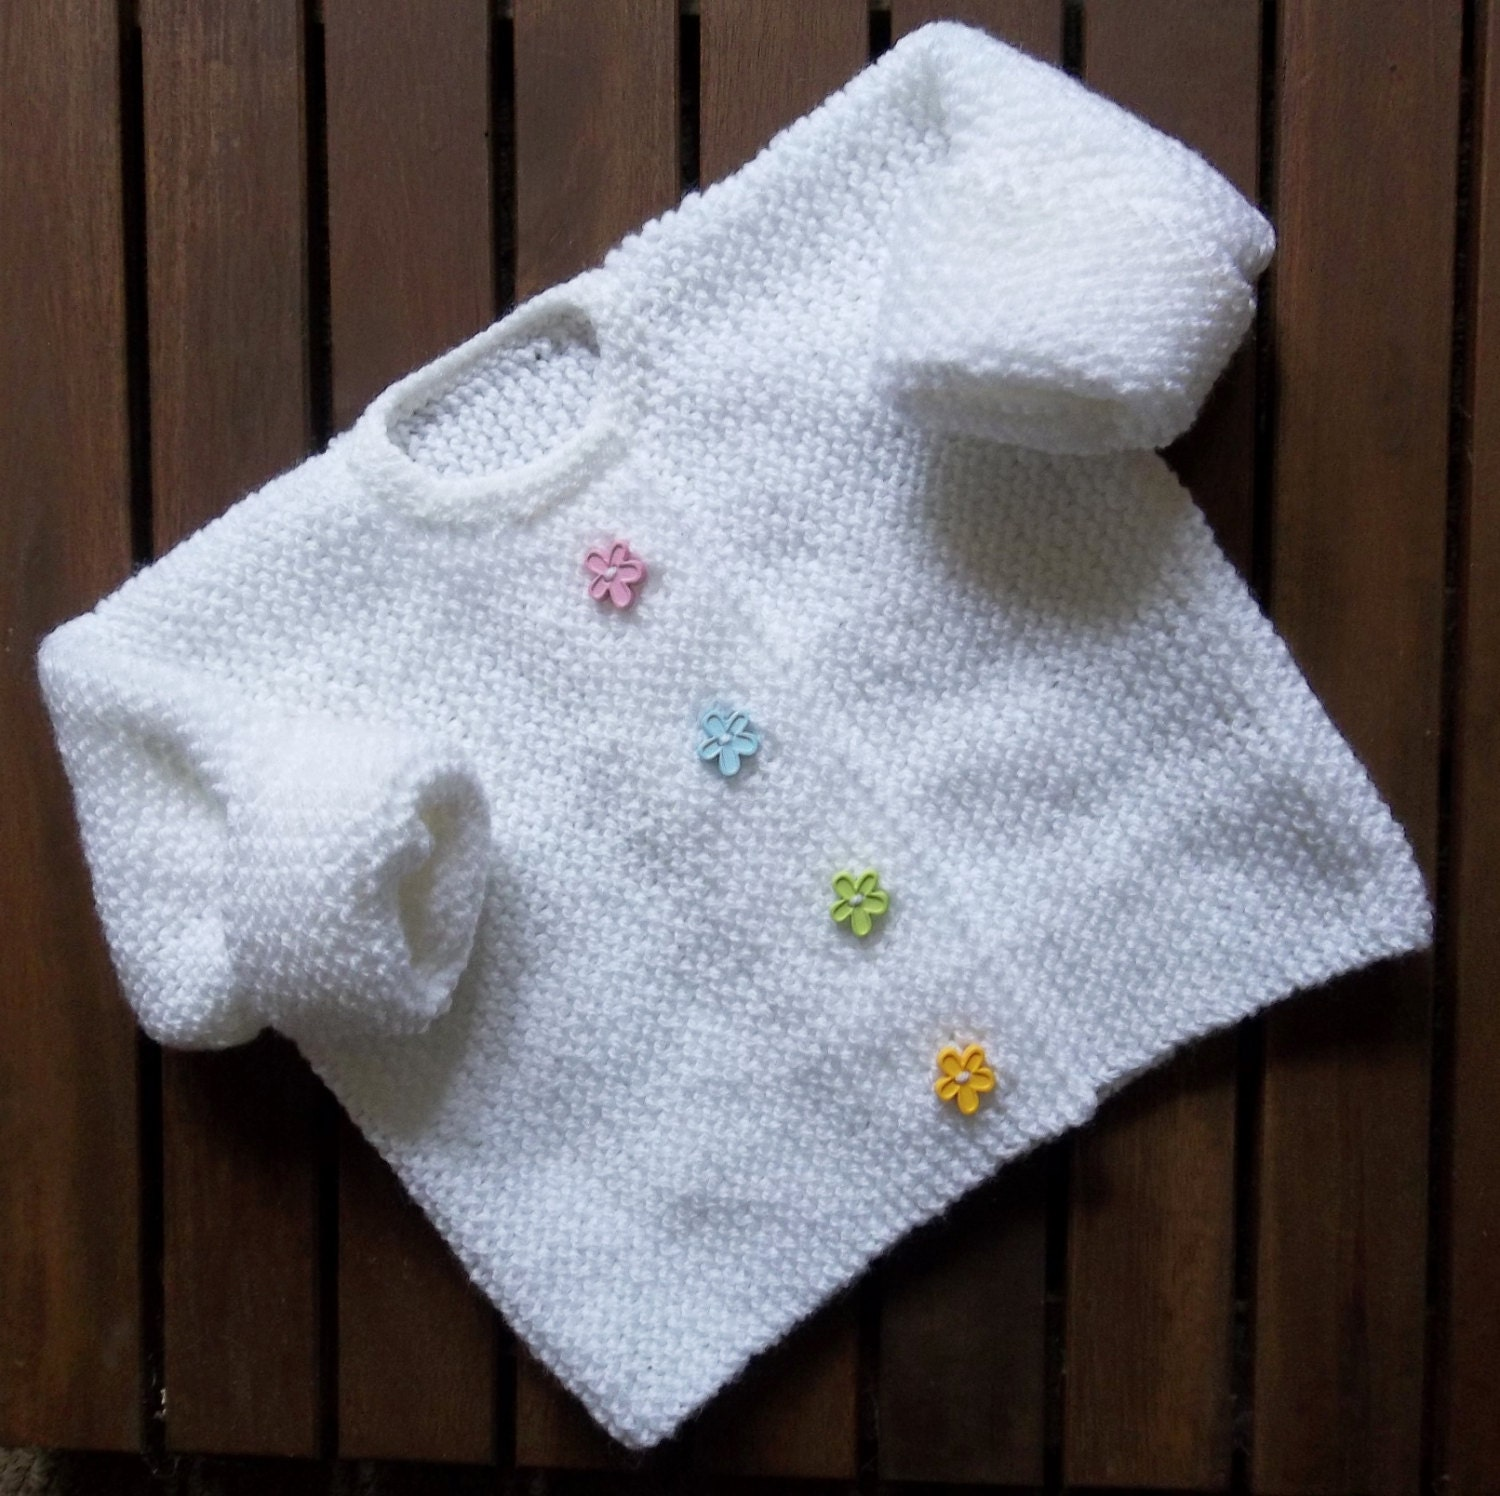 Knitting Pattern Baby Jacket Garter Stitch : Baby Knitting. Little Flower Garter Stitch Cardigan. Hand